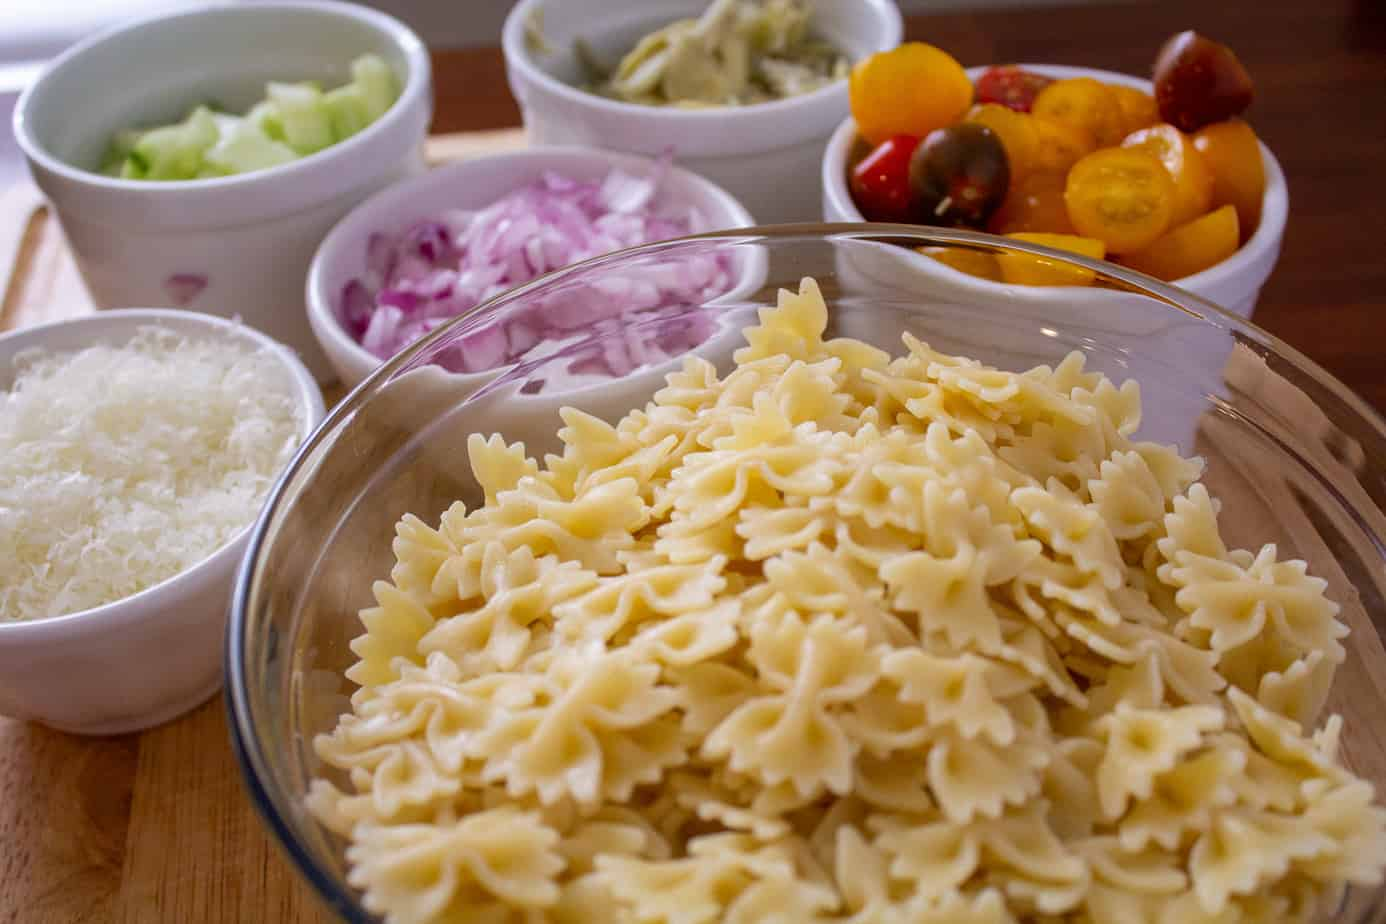 pasta, red onions, cherry tomatoes in bowls on a cutting board